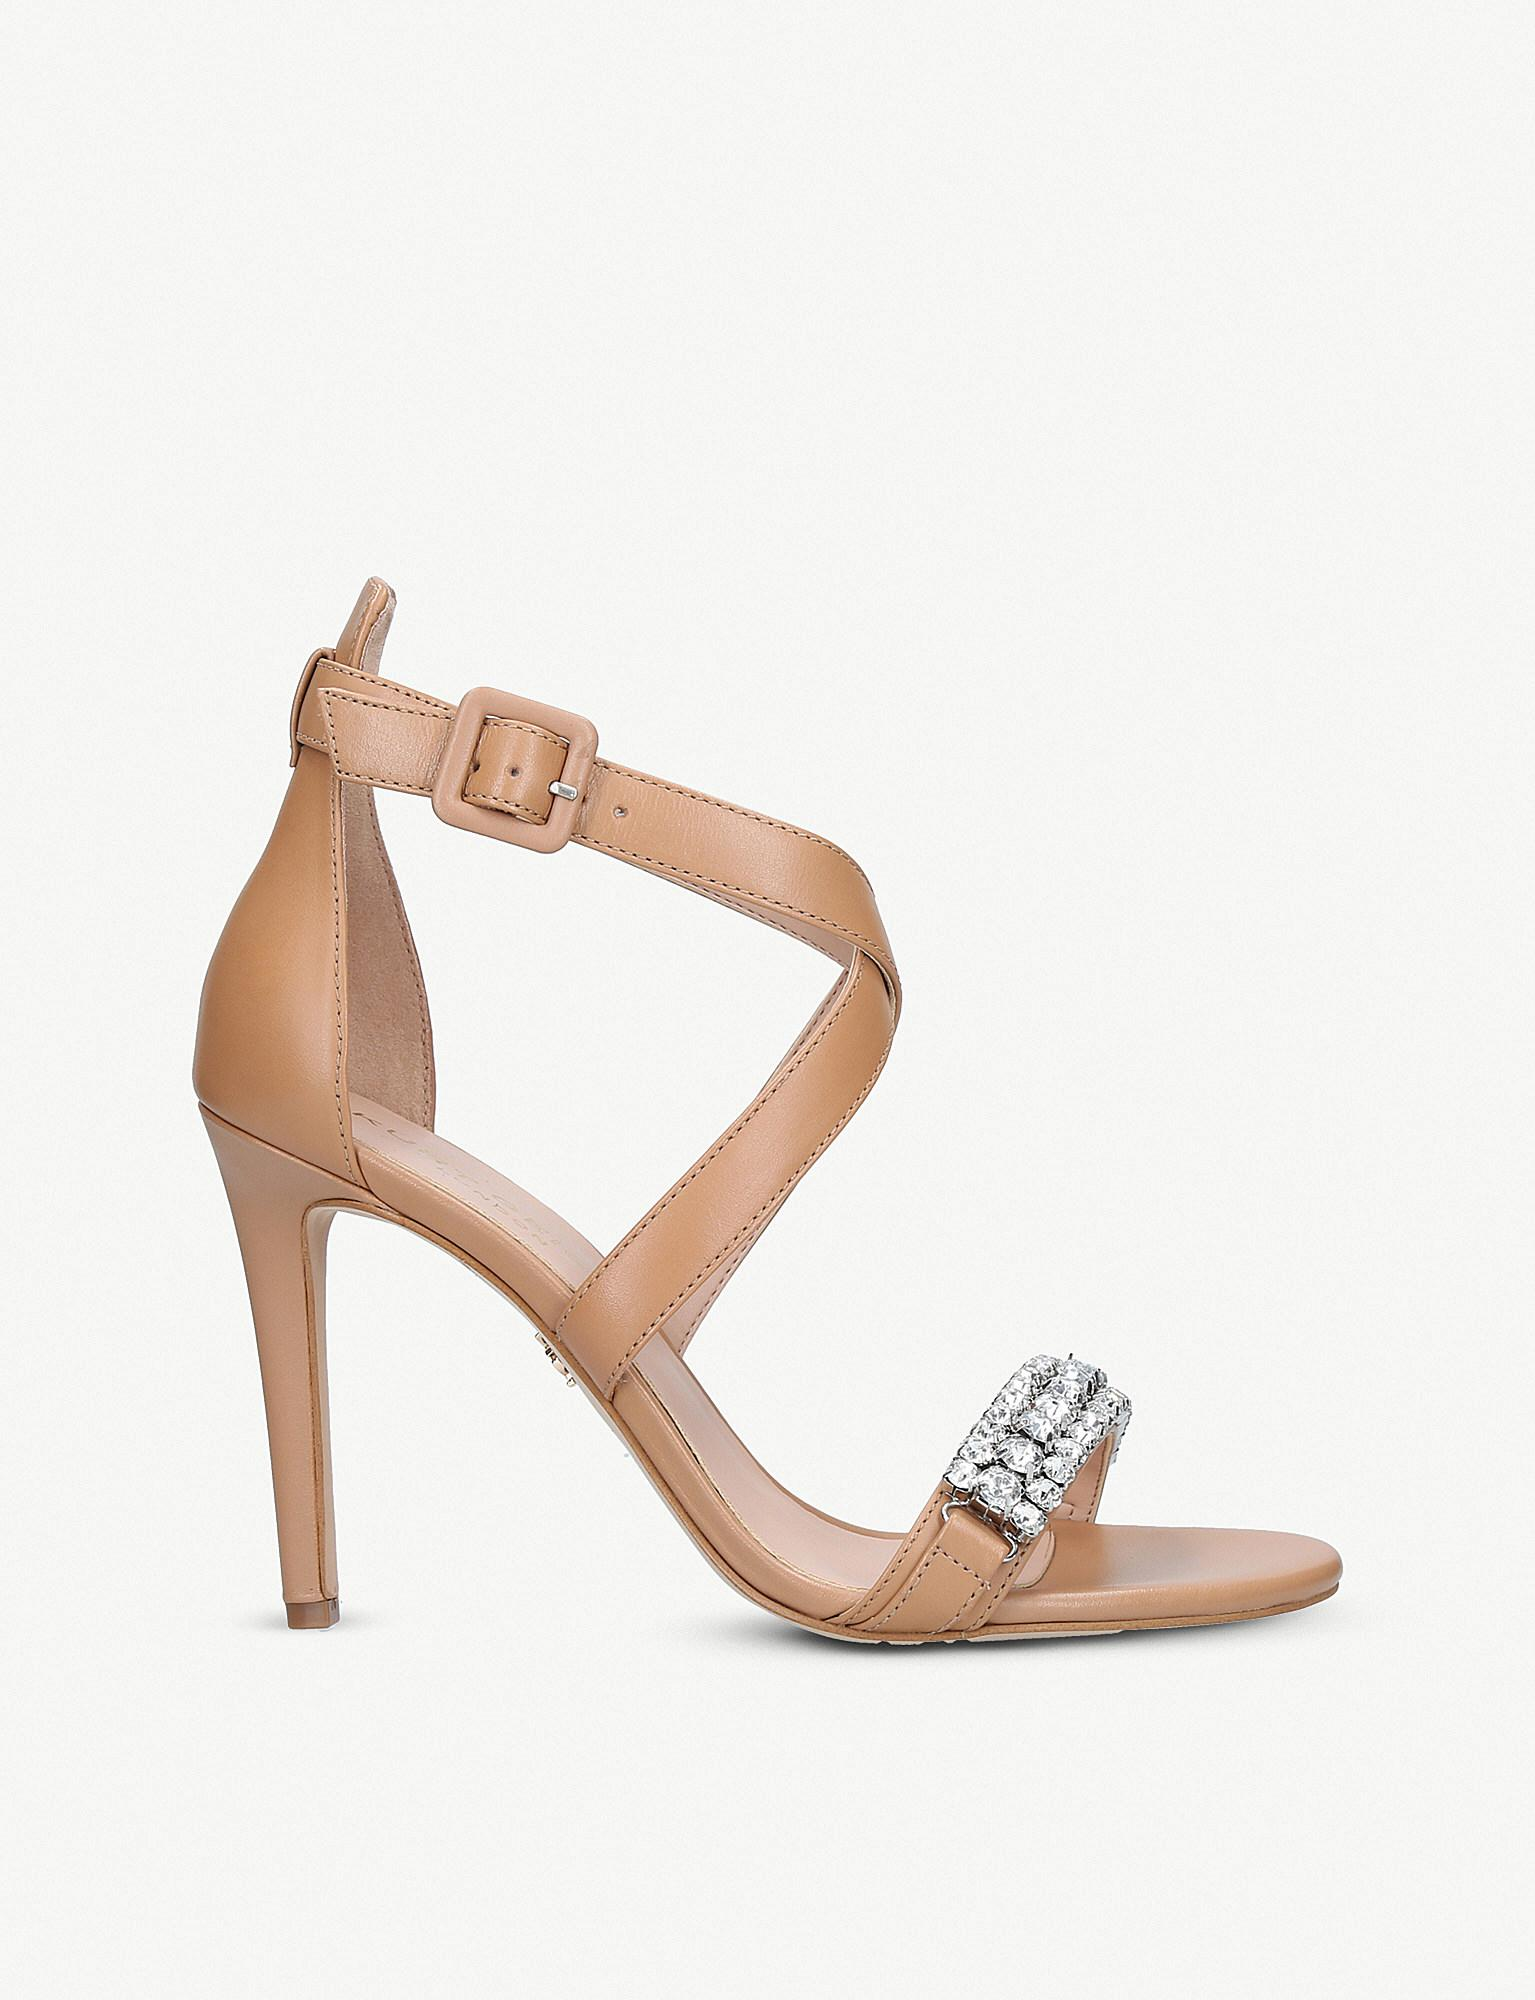 1e2240fb387 Kurt Geiger. Women s Knightsbridge Crystal Stiletto Heel Sandals